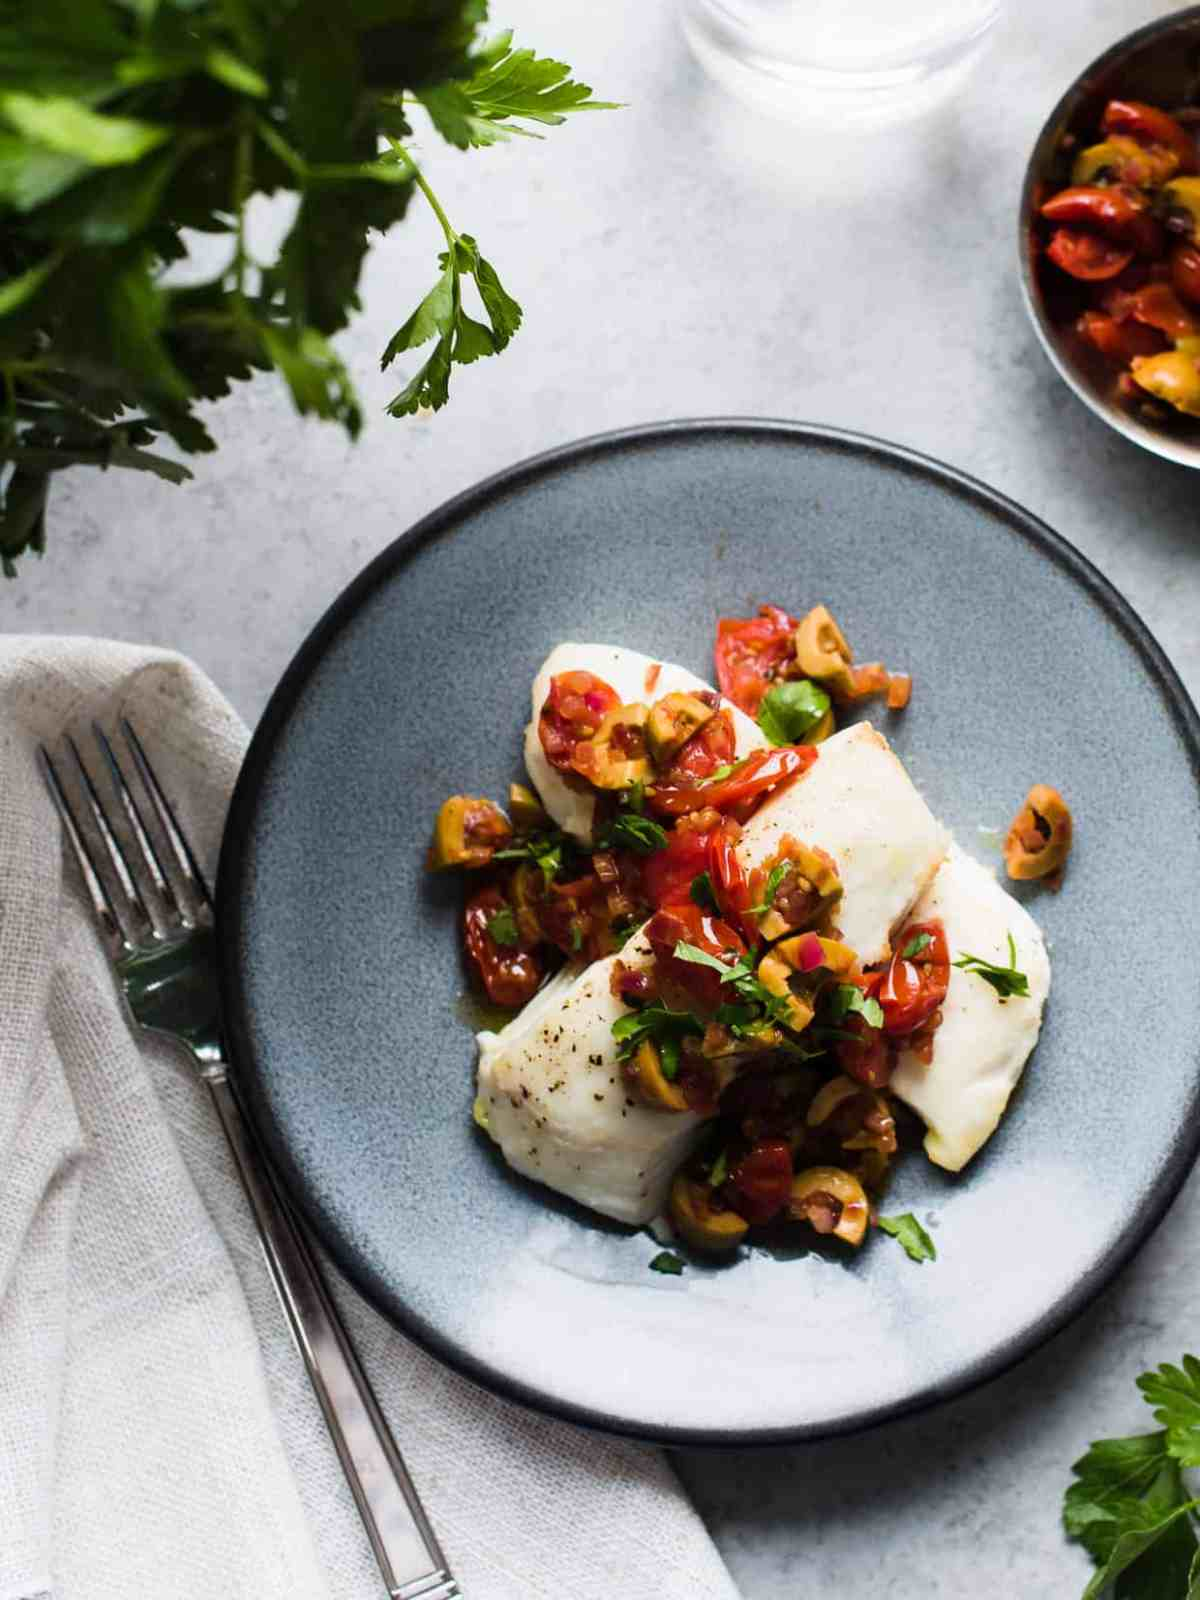 Baked halibut topped with a sauce of olives, onions, tomato and parsley.